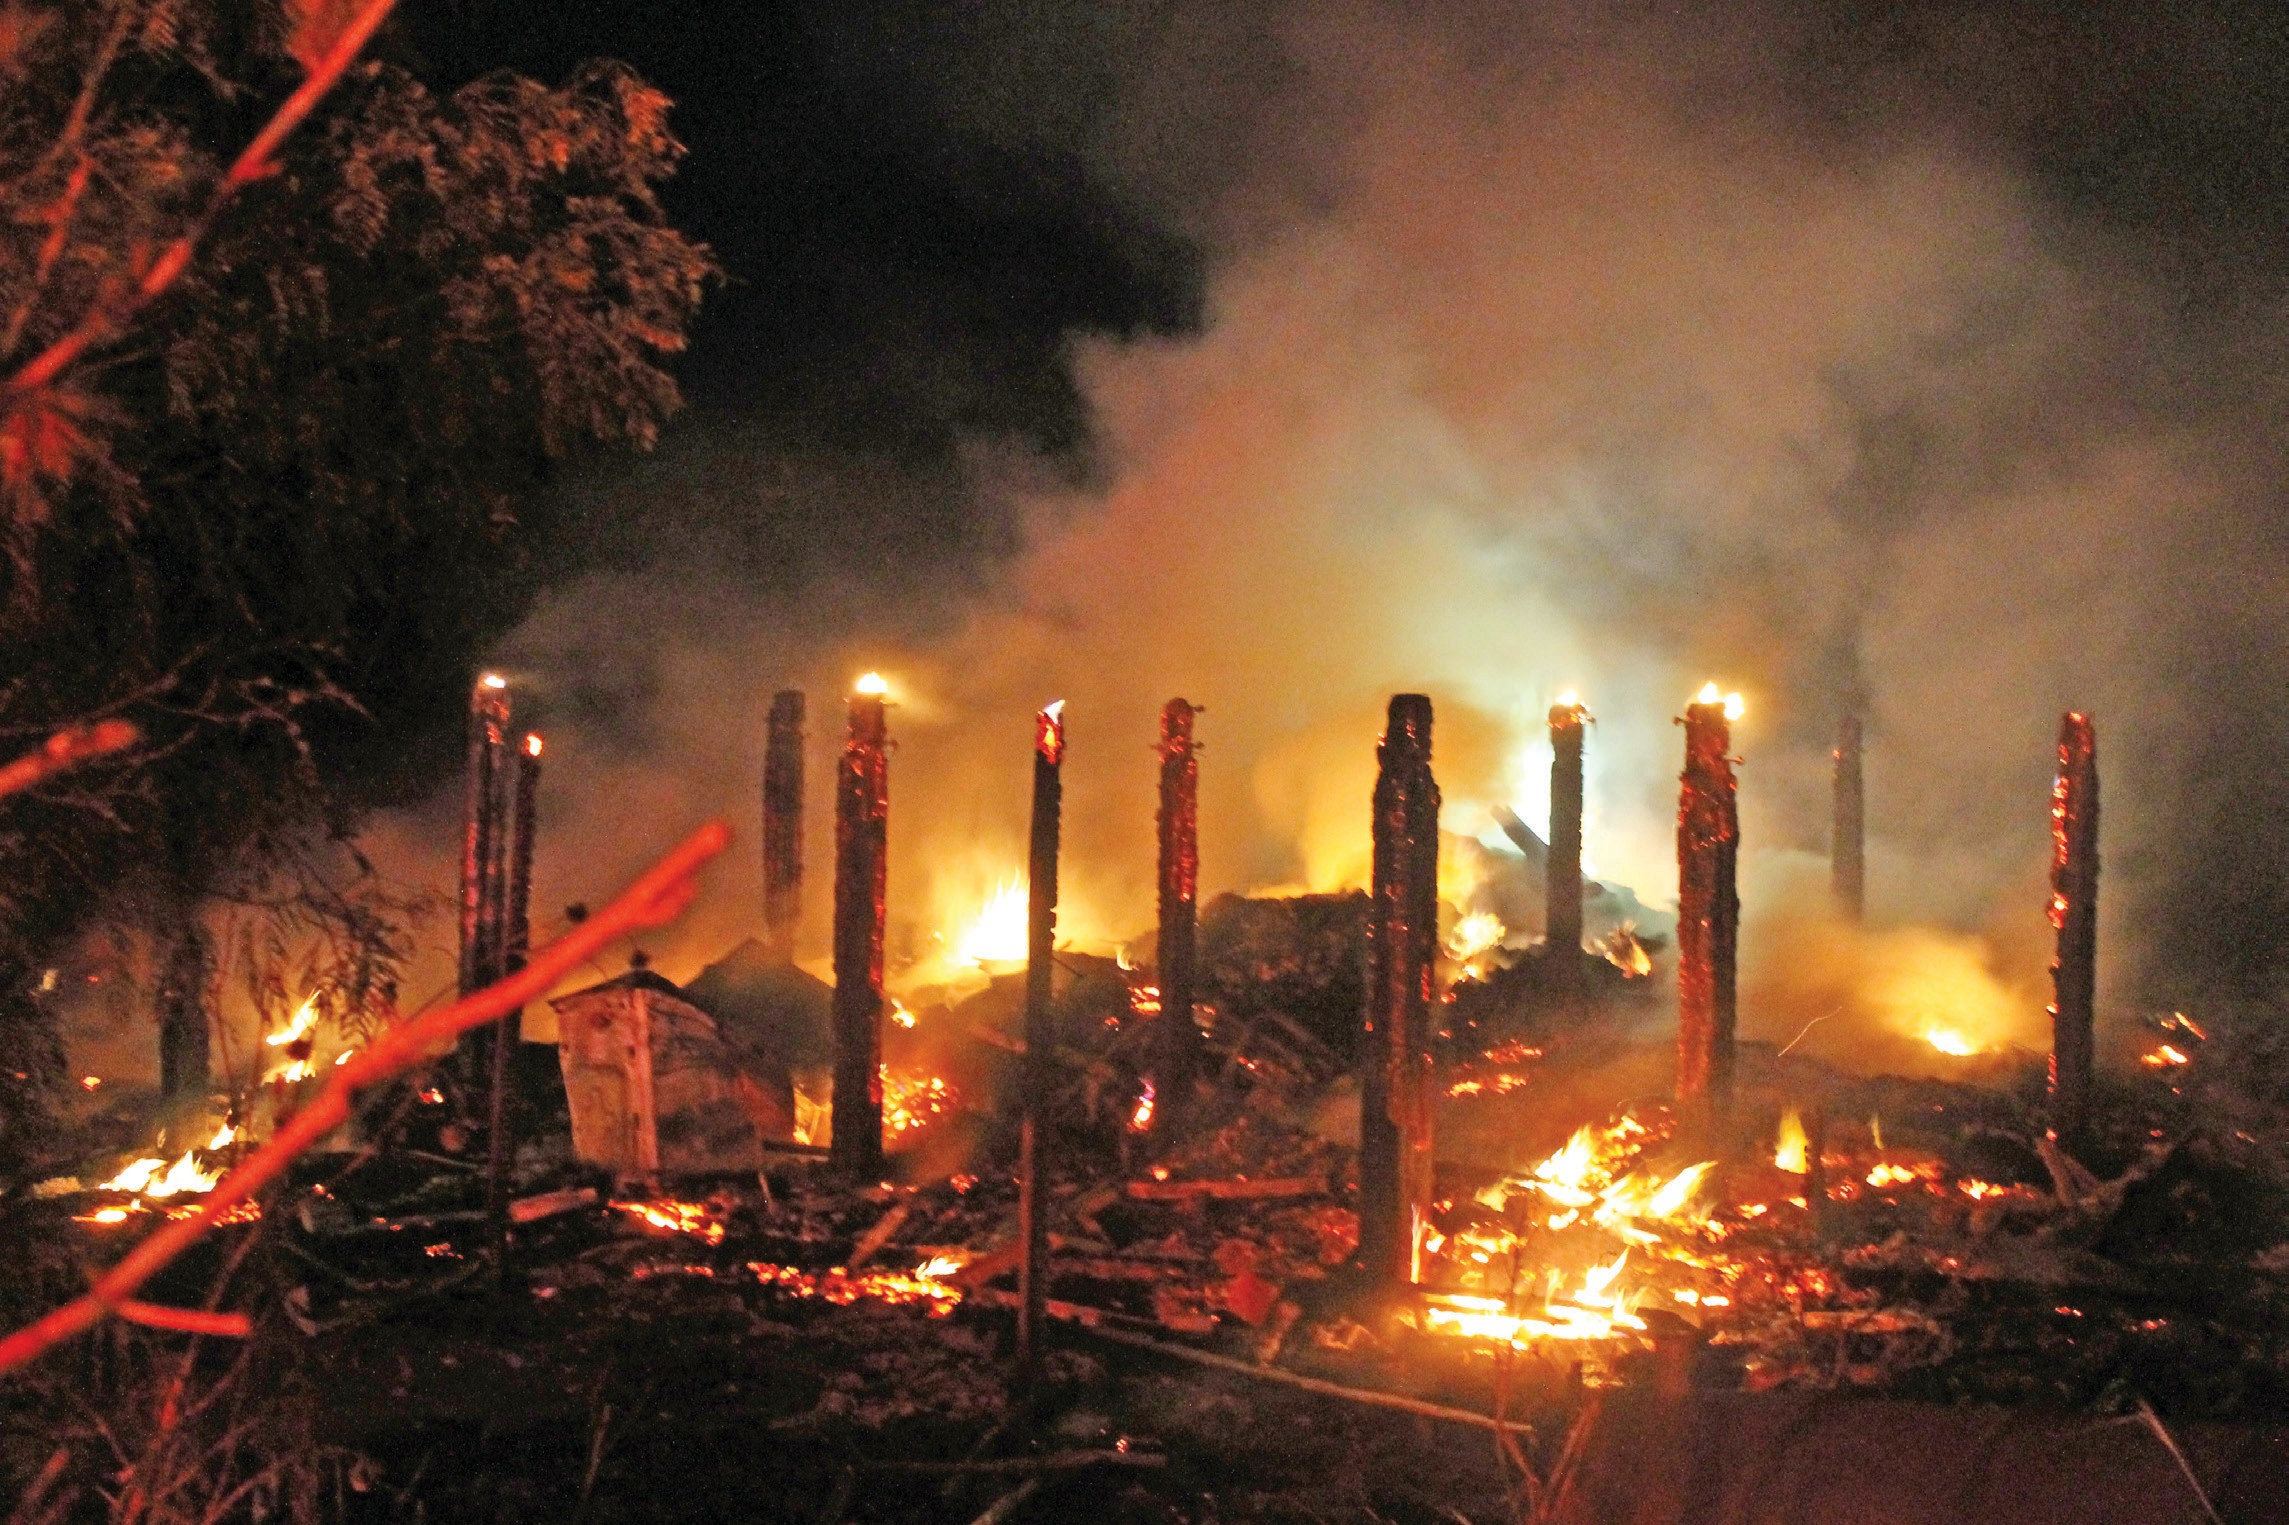 Michael Myrin's stilt house burned at 2 am Friday morning. Mr. Myrin sustained injuries while trying to escape the fire.